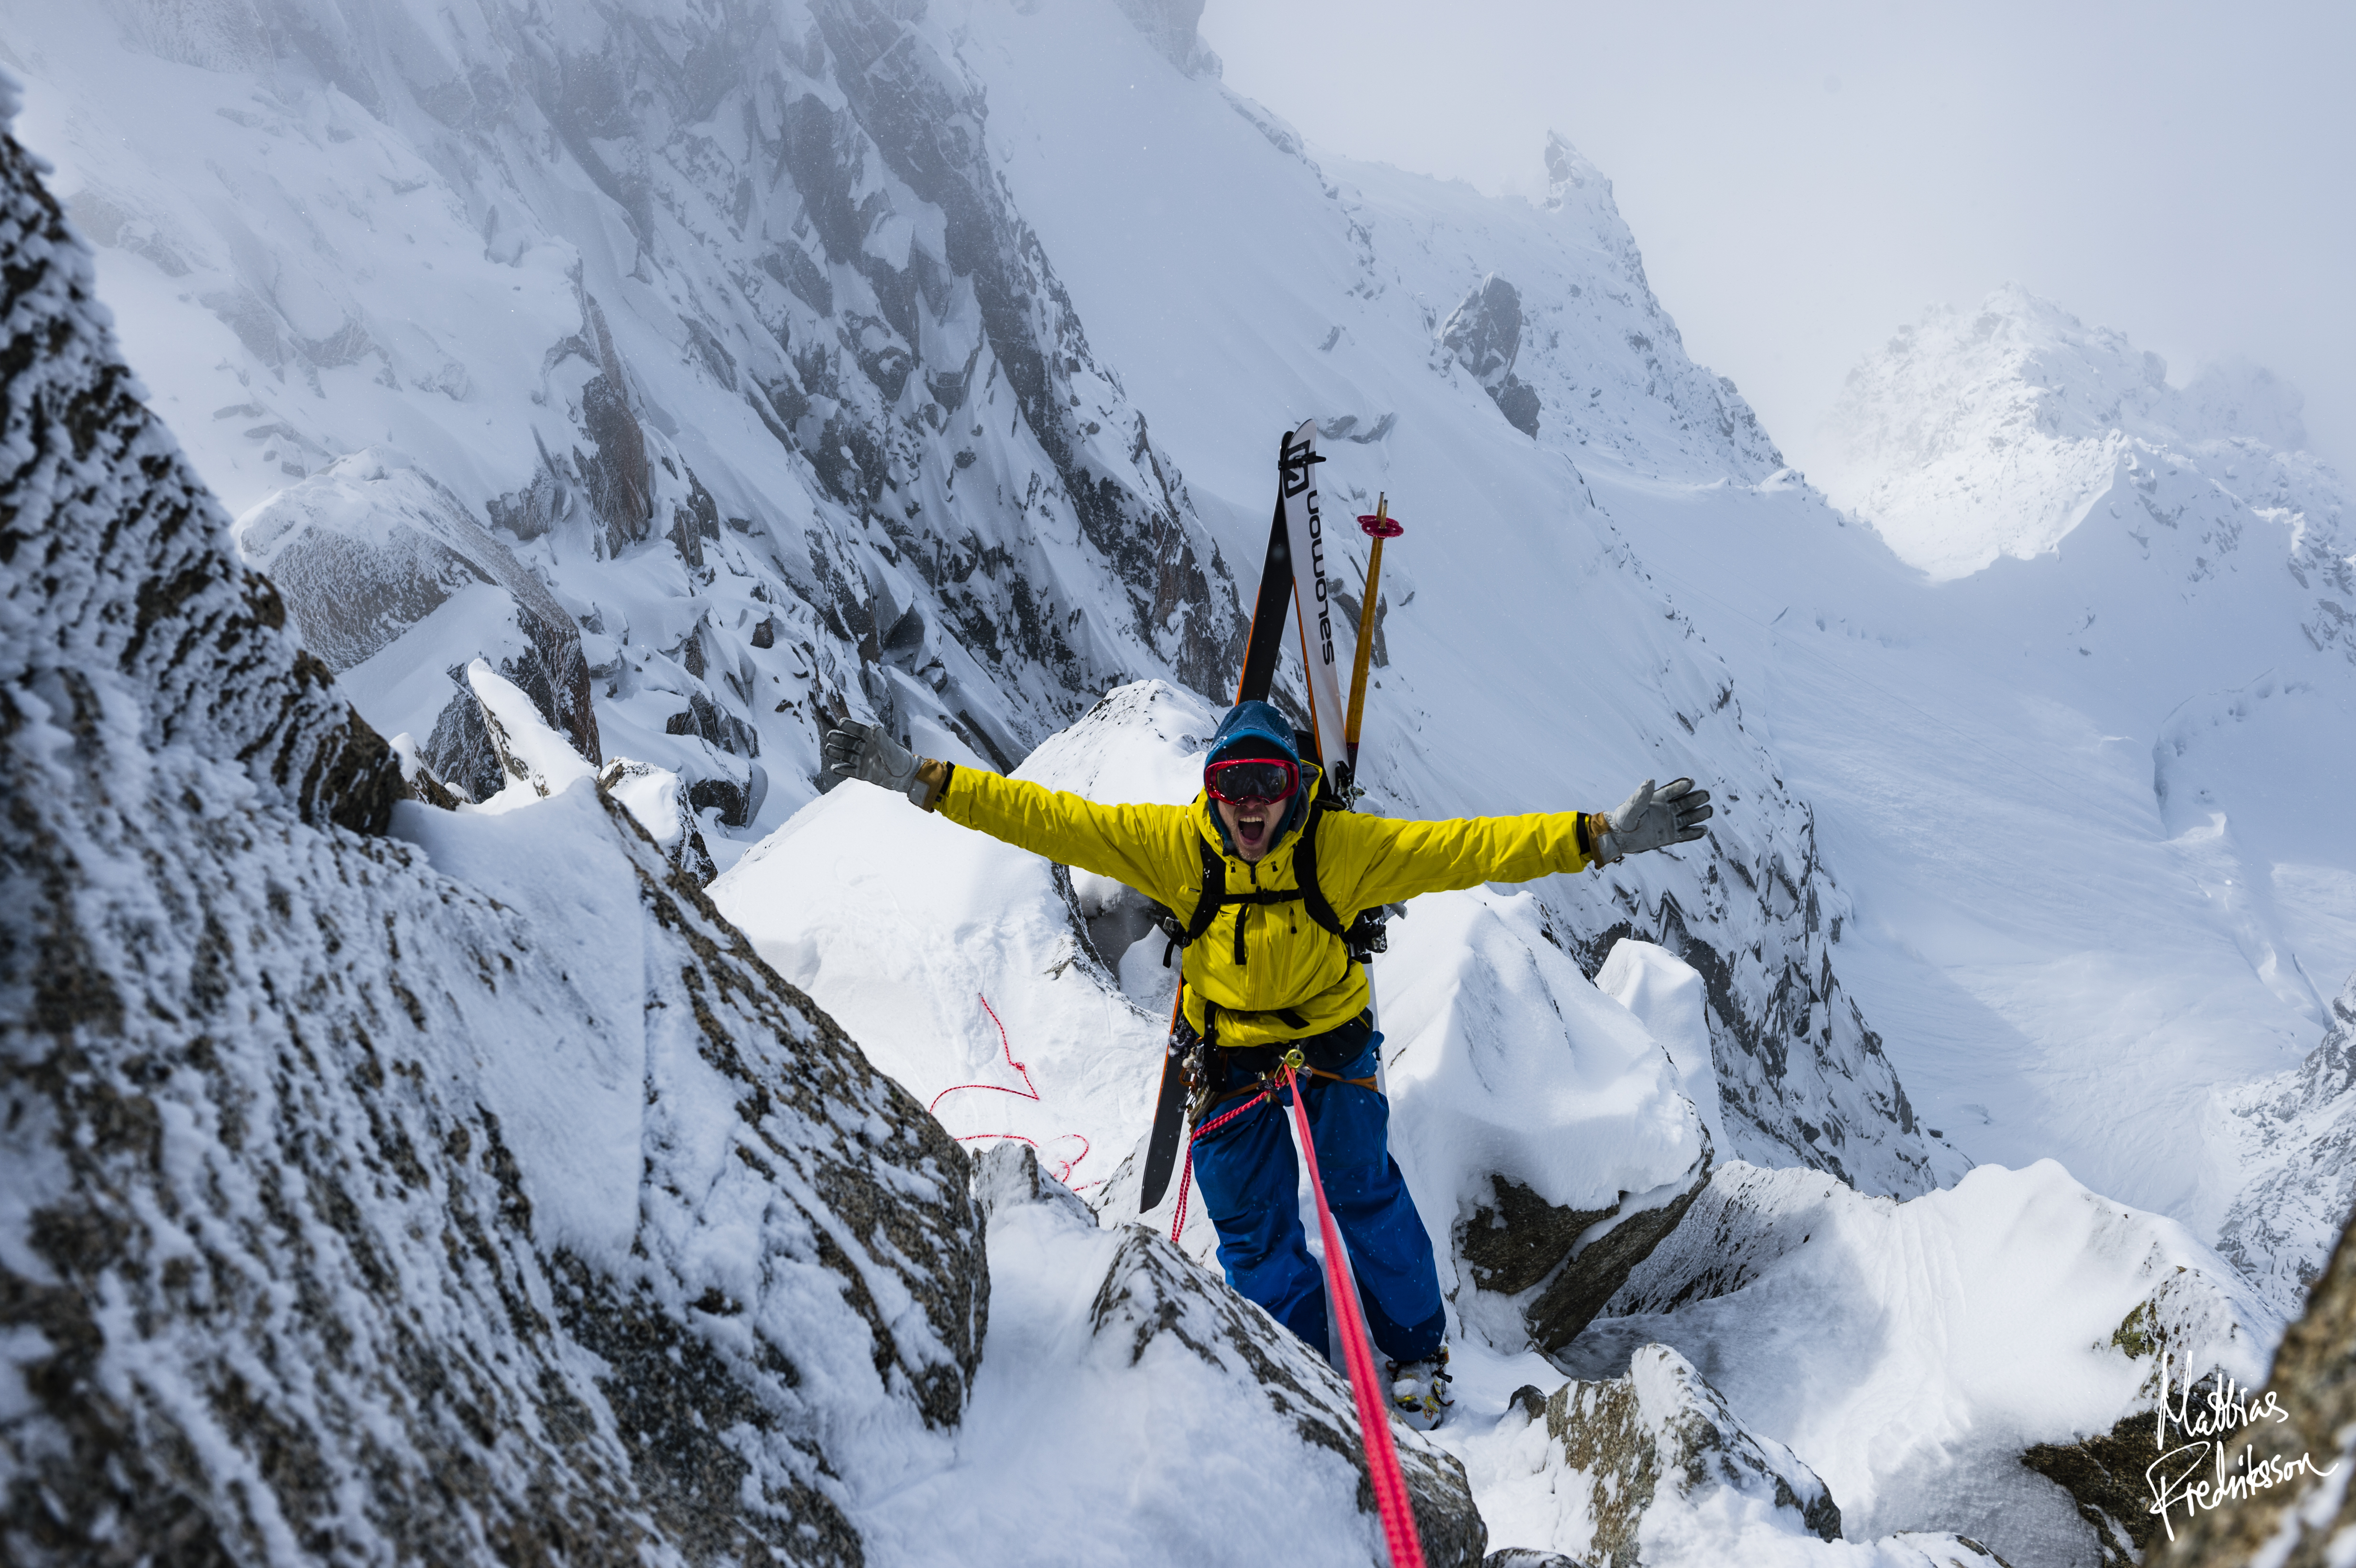 Andreas Fransson rappelling in Chamonix, France.